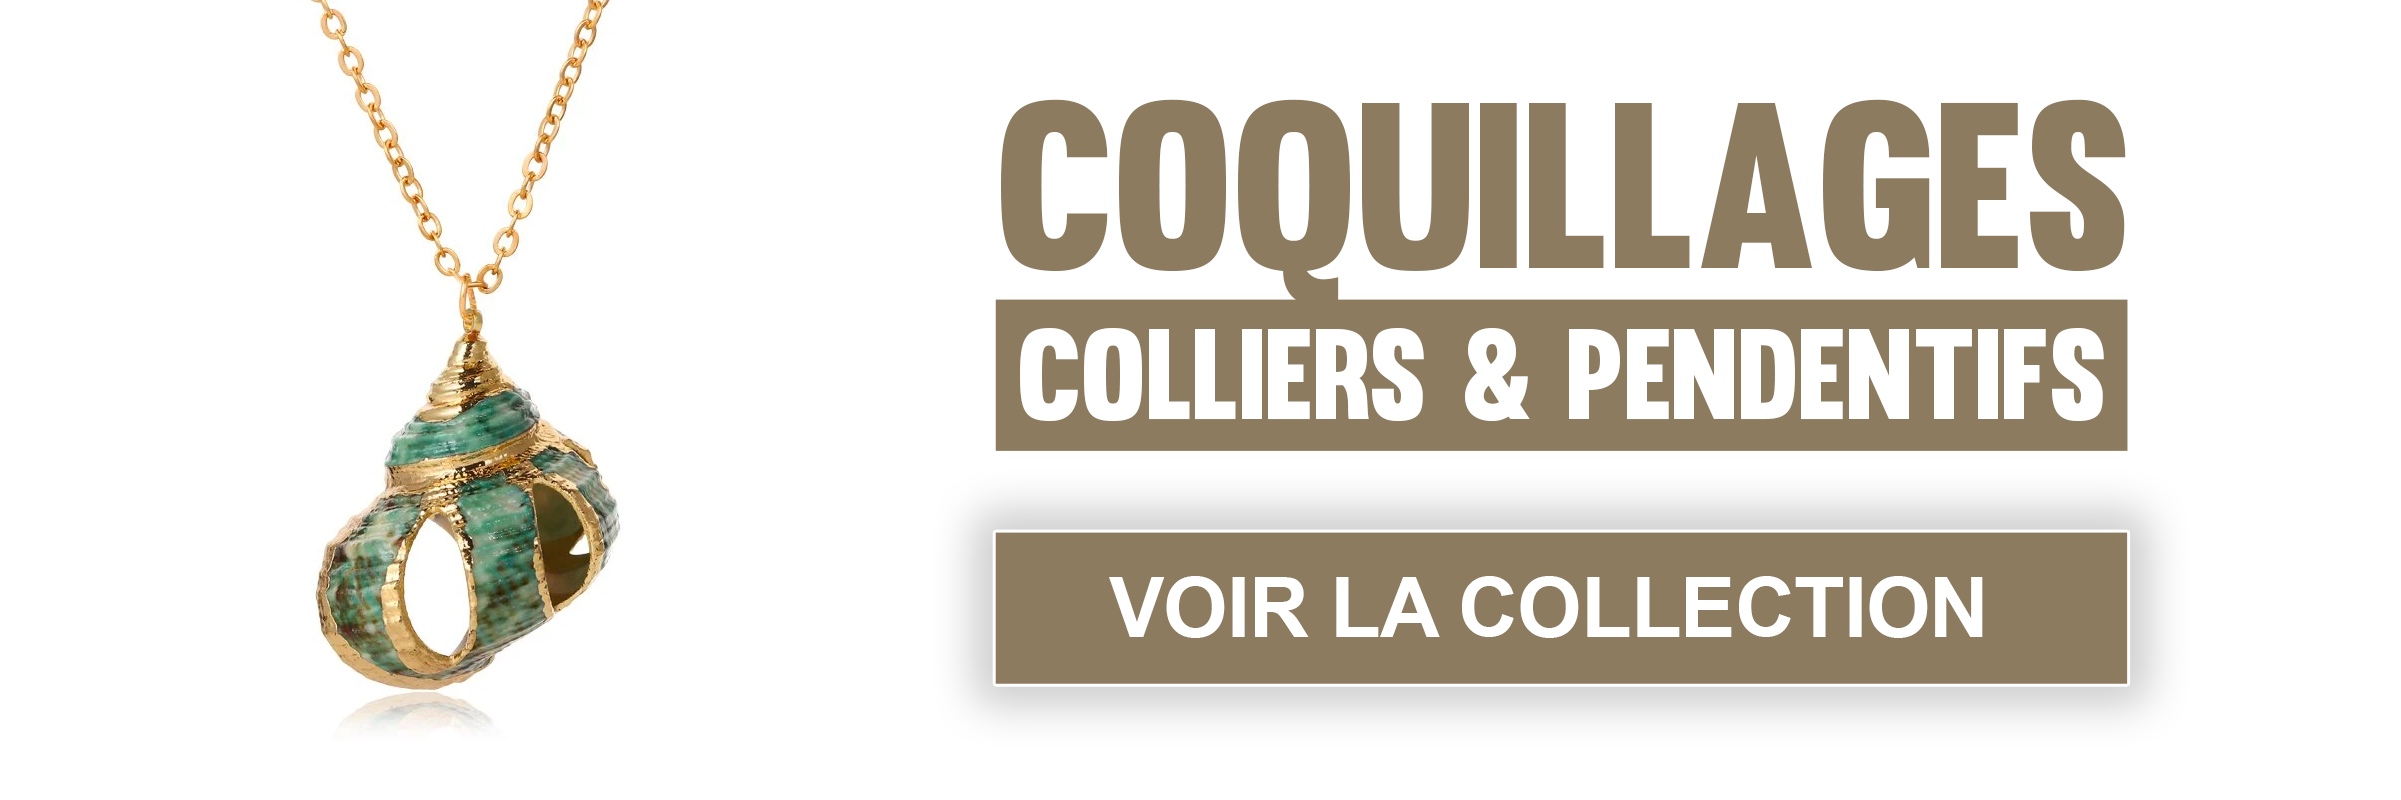 Collection de colliers et pendentifs coquillages